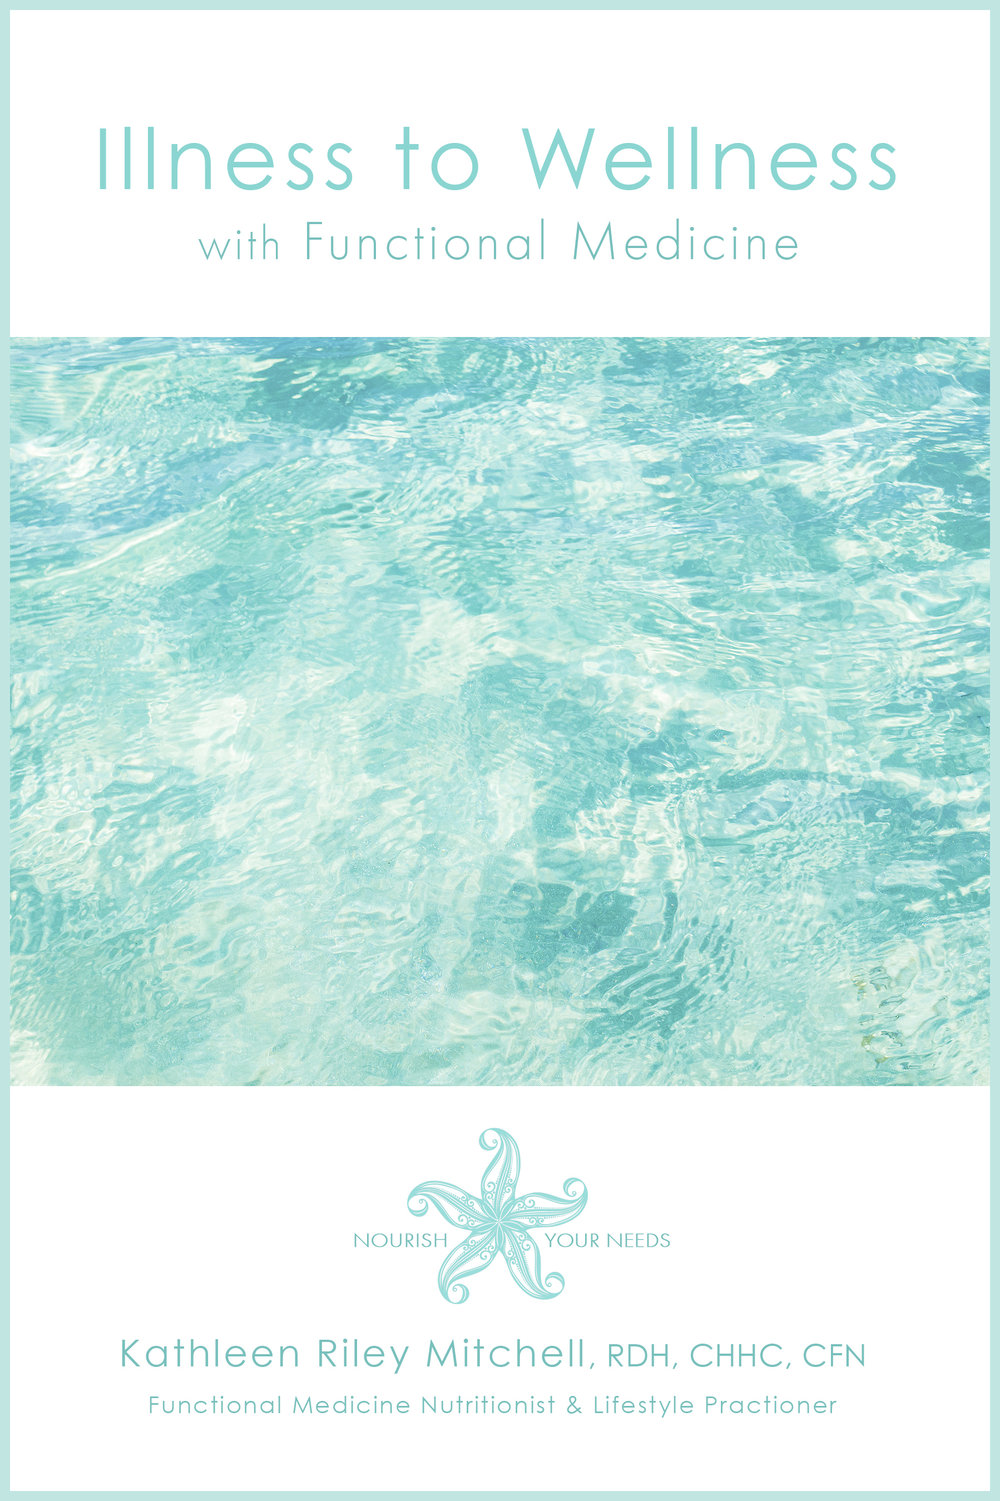 kathleen illness to wellness book cover front for website drop shadow.jpg